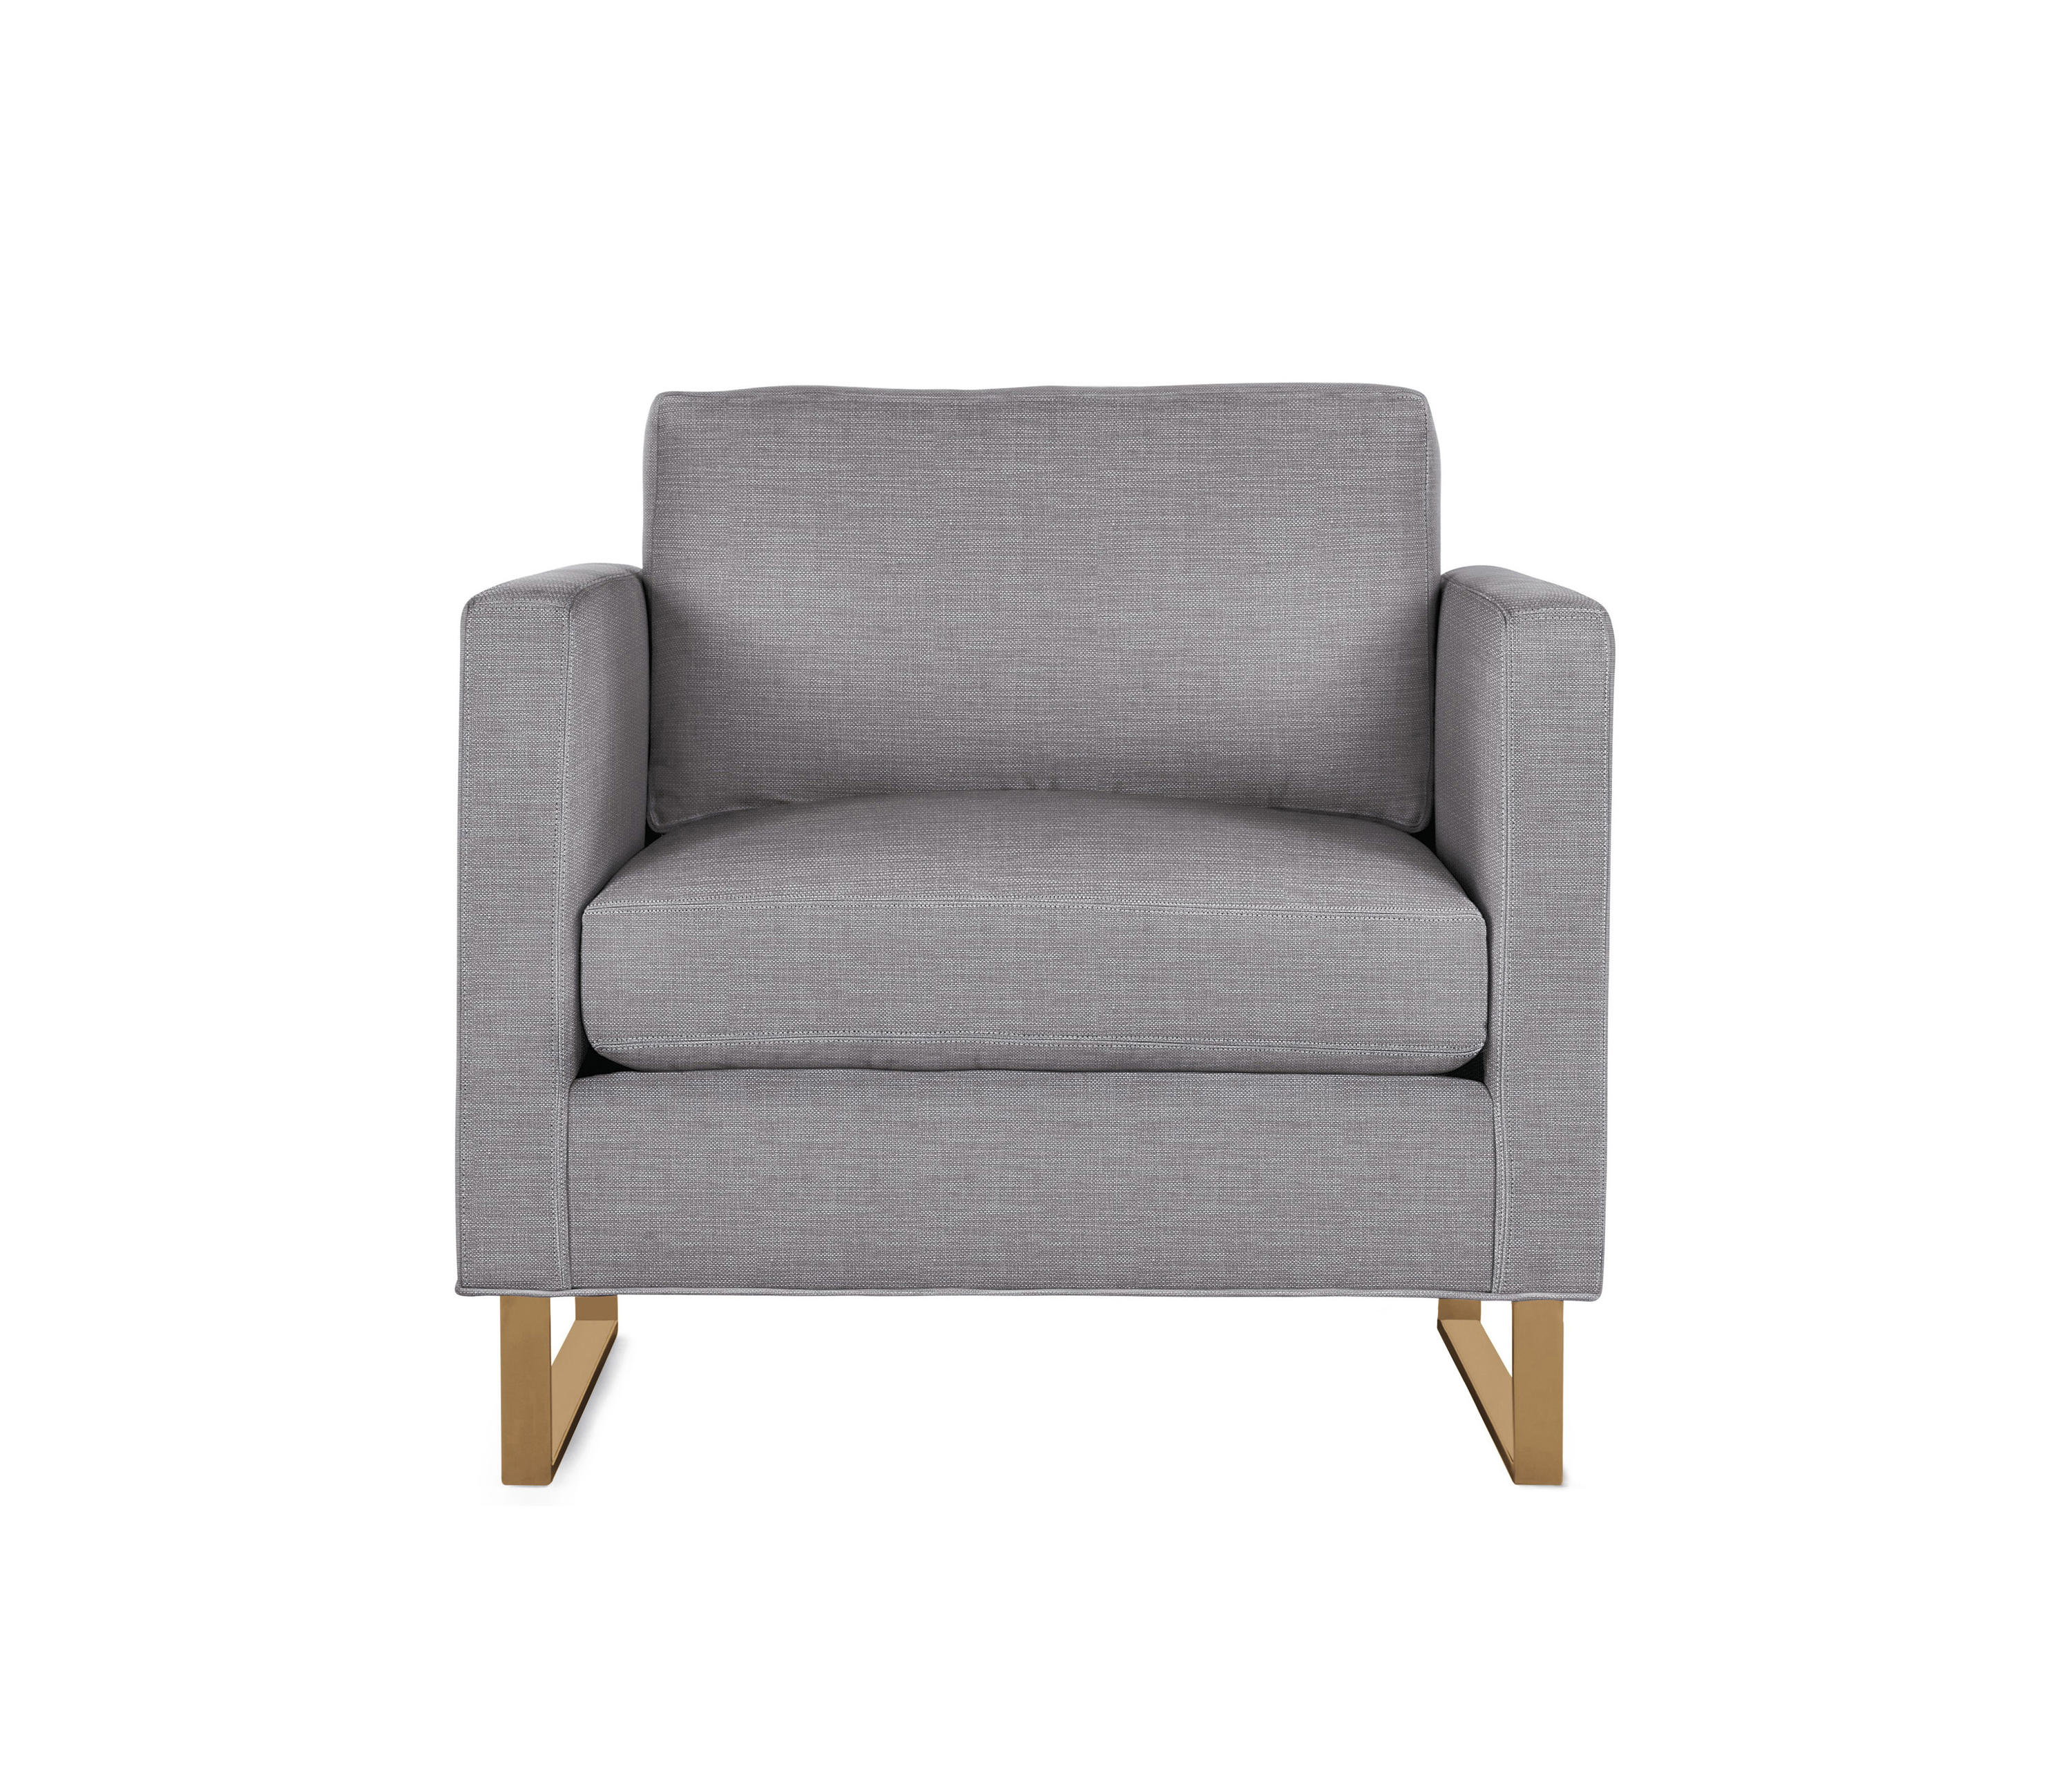 Goodland Armchair In Fabric Bronze Legs Armchairs From Design